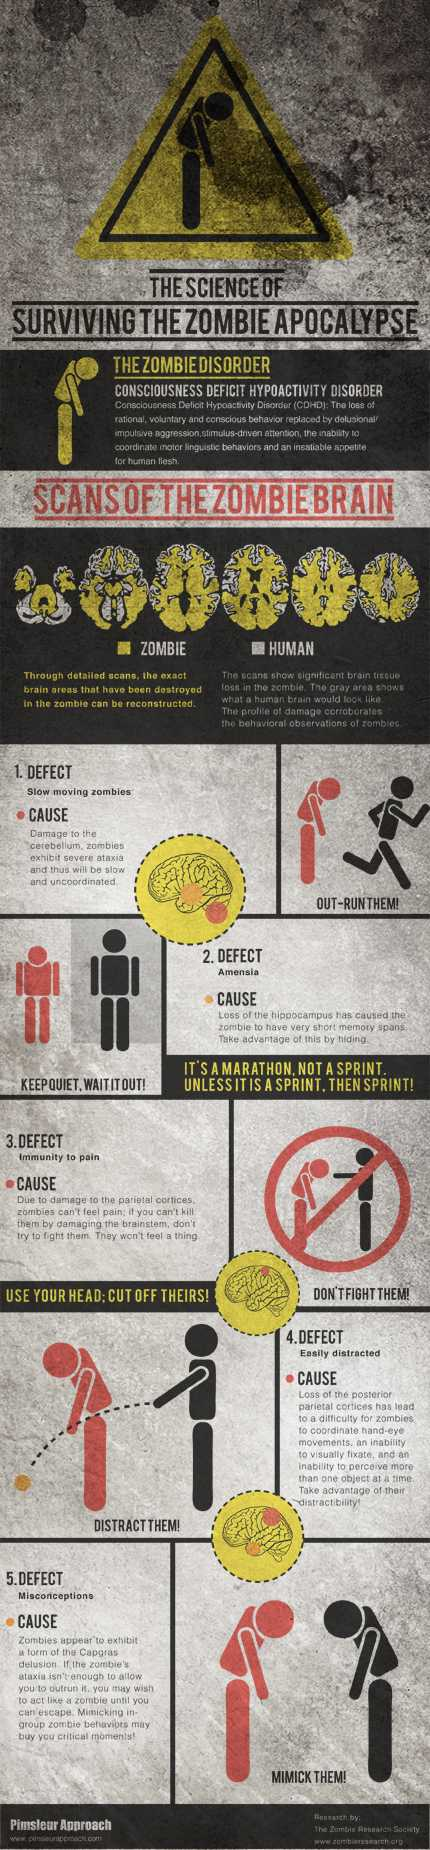 science survicing zombie apocalyps Infographic: Science of Surviving the Zombie Apocalypse